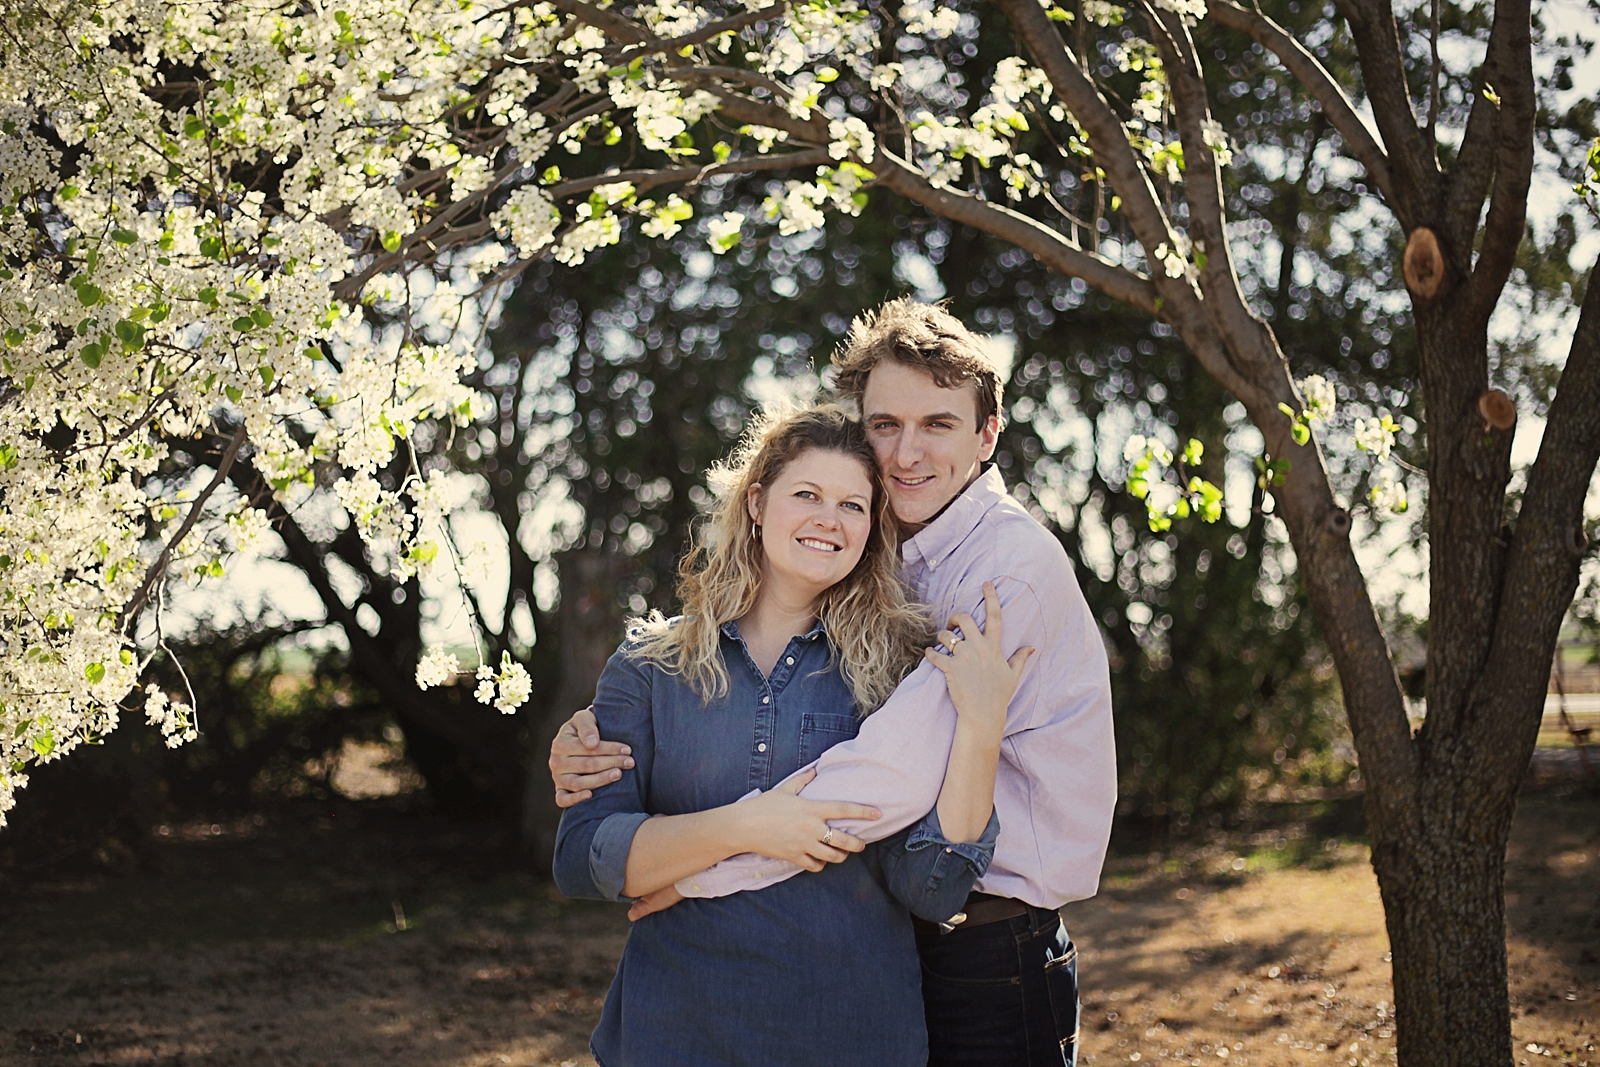 couple in an orchard, engagements on a farm, thomas oklahoma wedding photographer, weatherford oklahoma wedding photographer, oklahoma wedding photographer